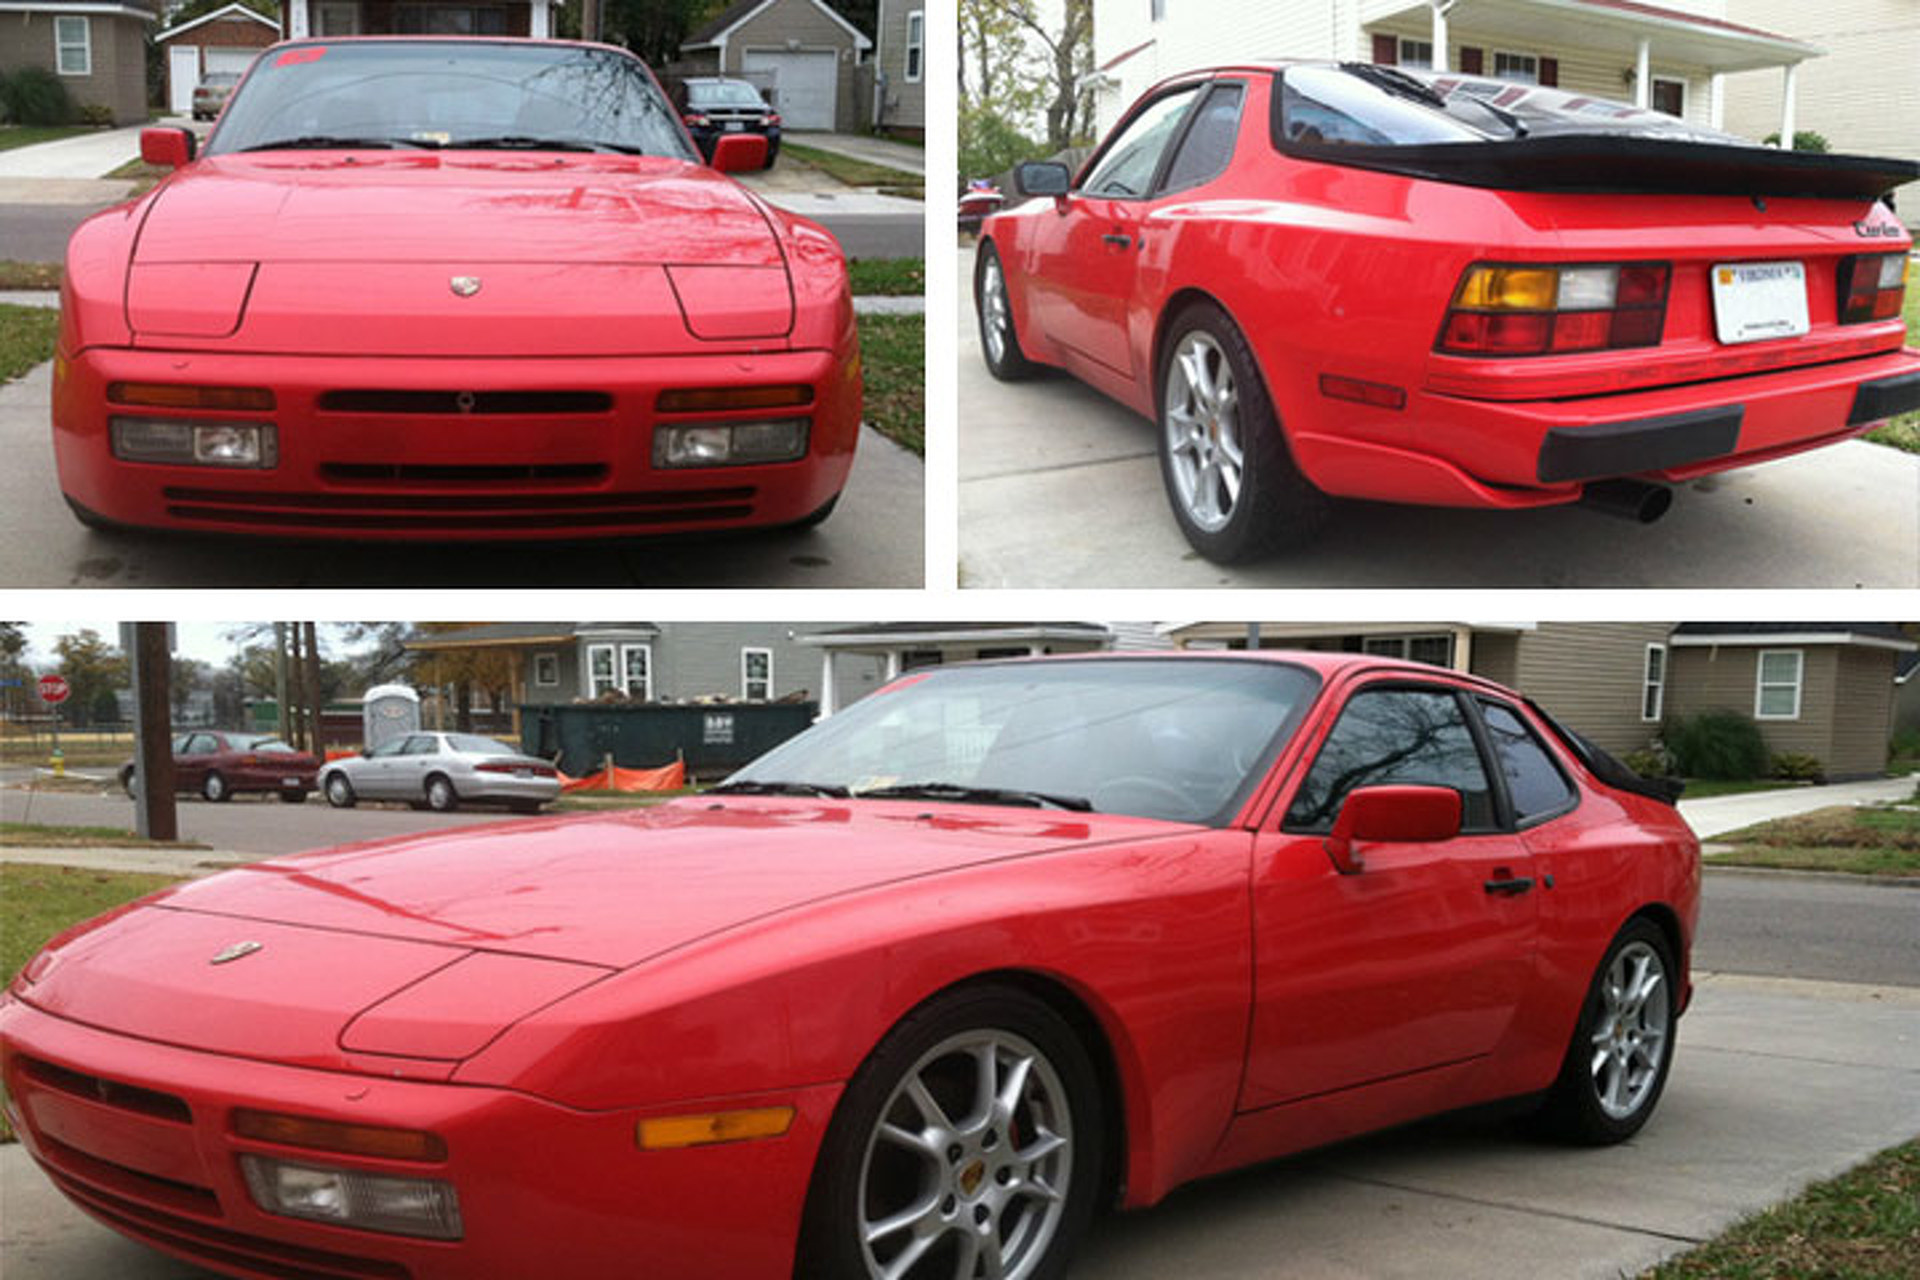 80s Porsche 944 or Nissan 300ZX: Which Would You Buy?